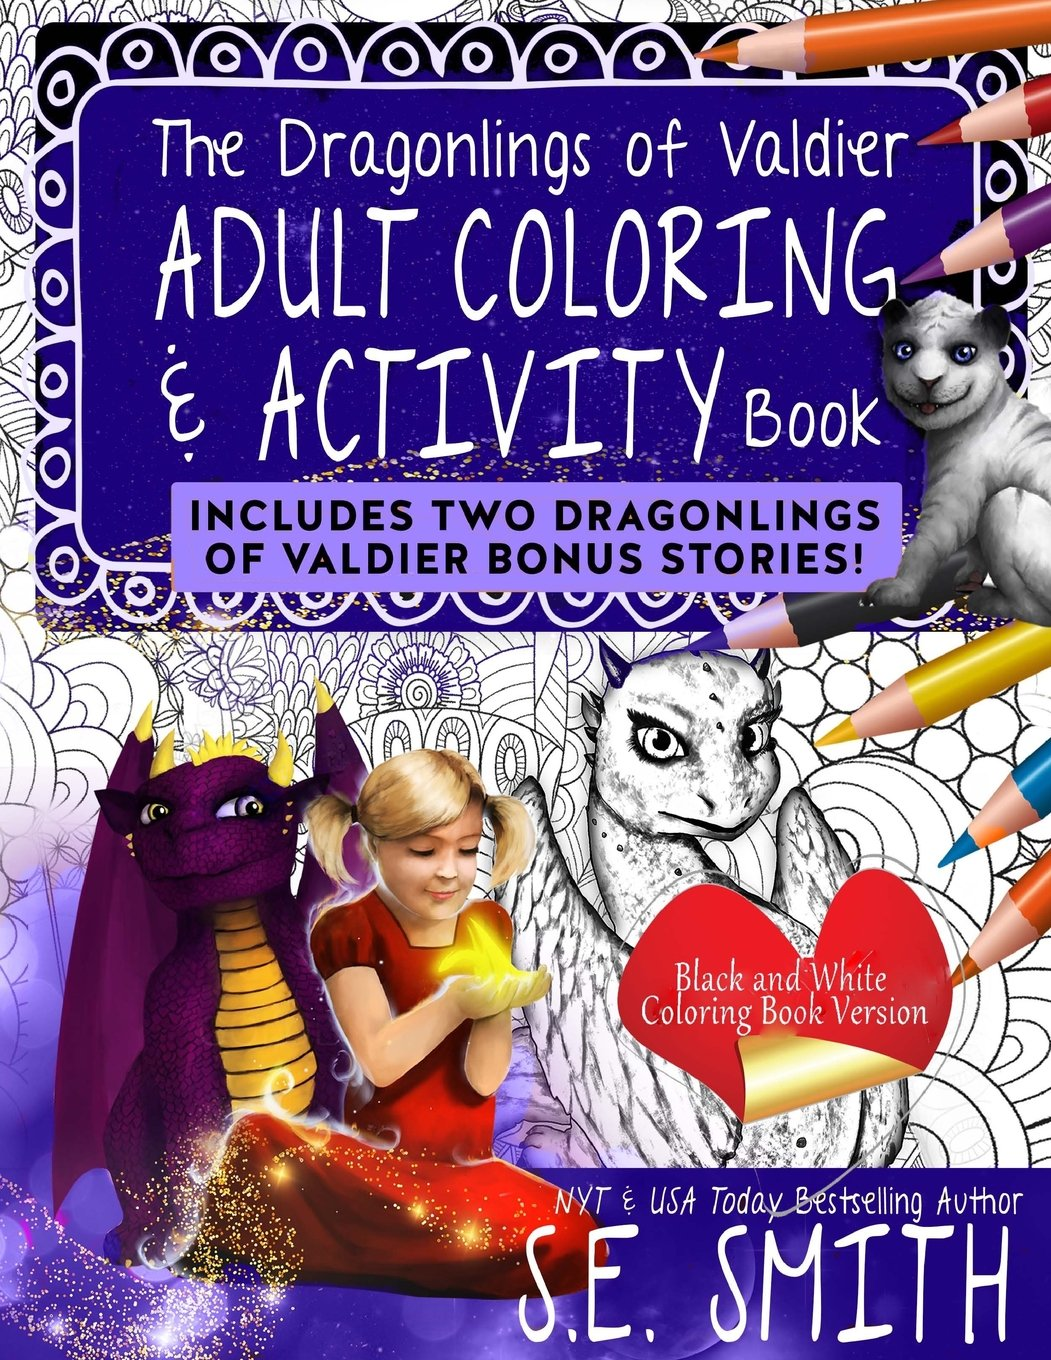 Read Online The Dragonlings Adult Coloring and Activity Book with Bonus Stories!: Dragonlings of Valdier pdf